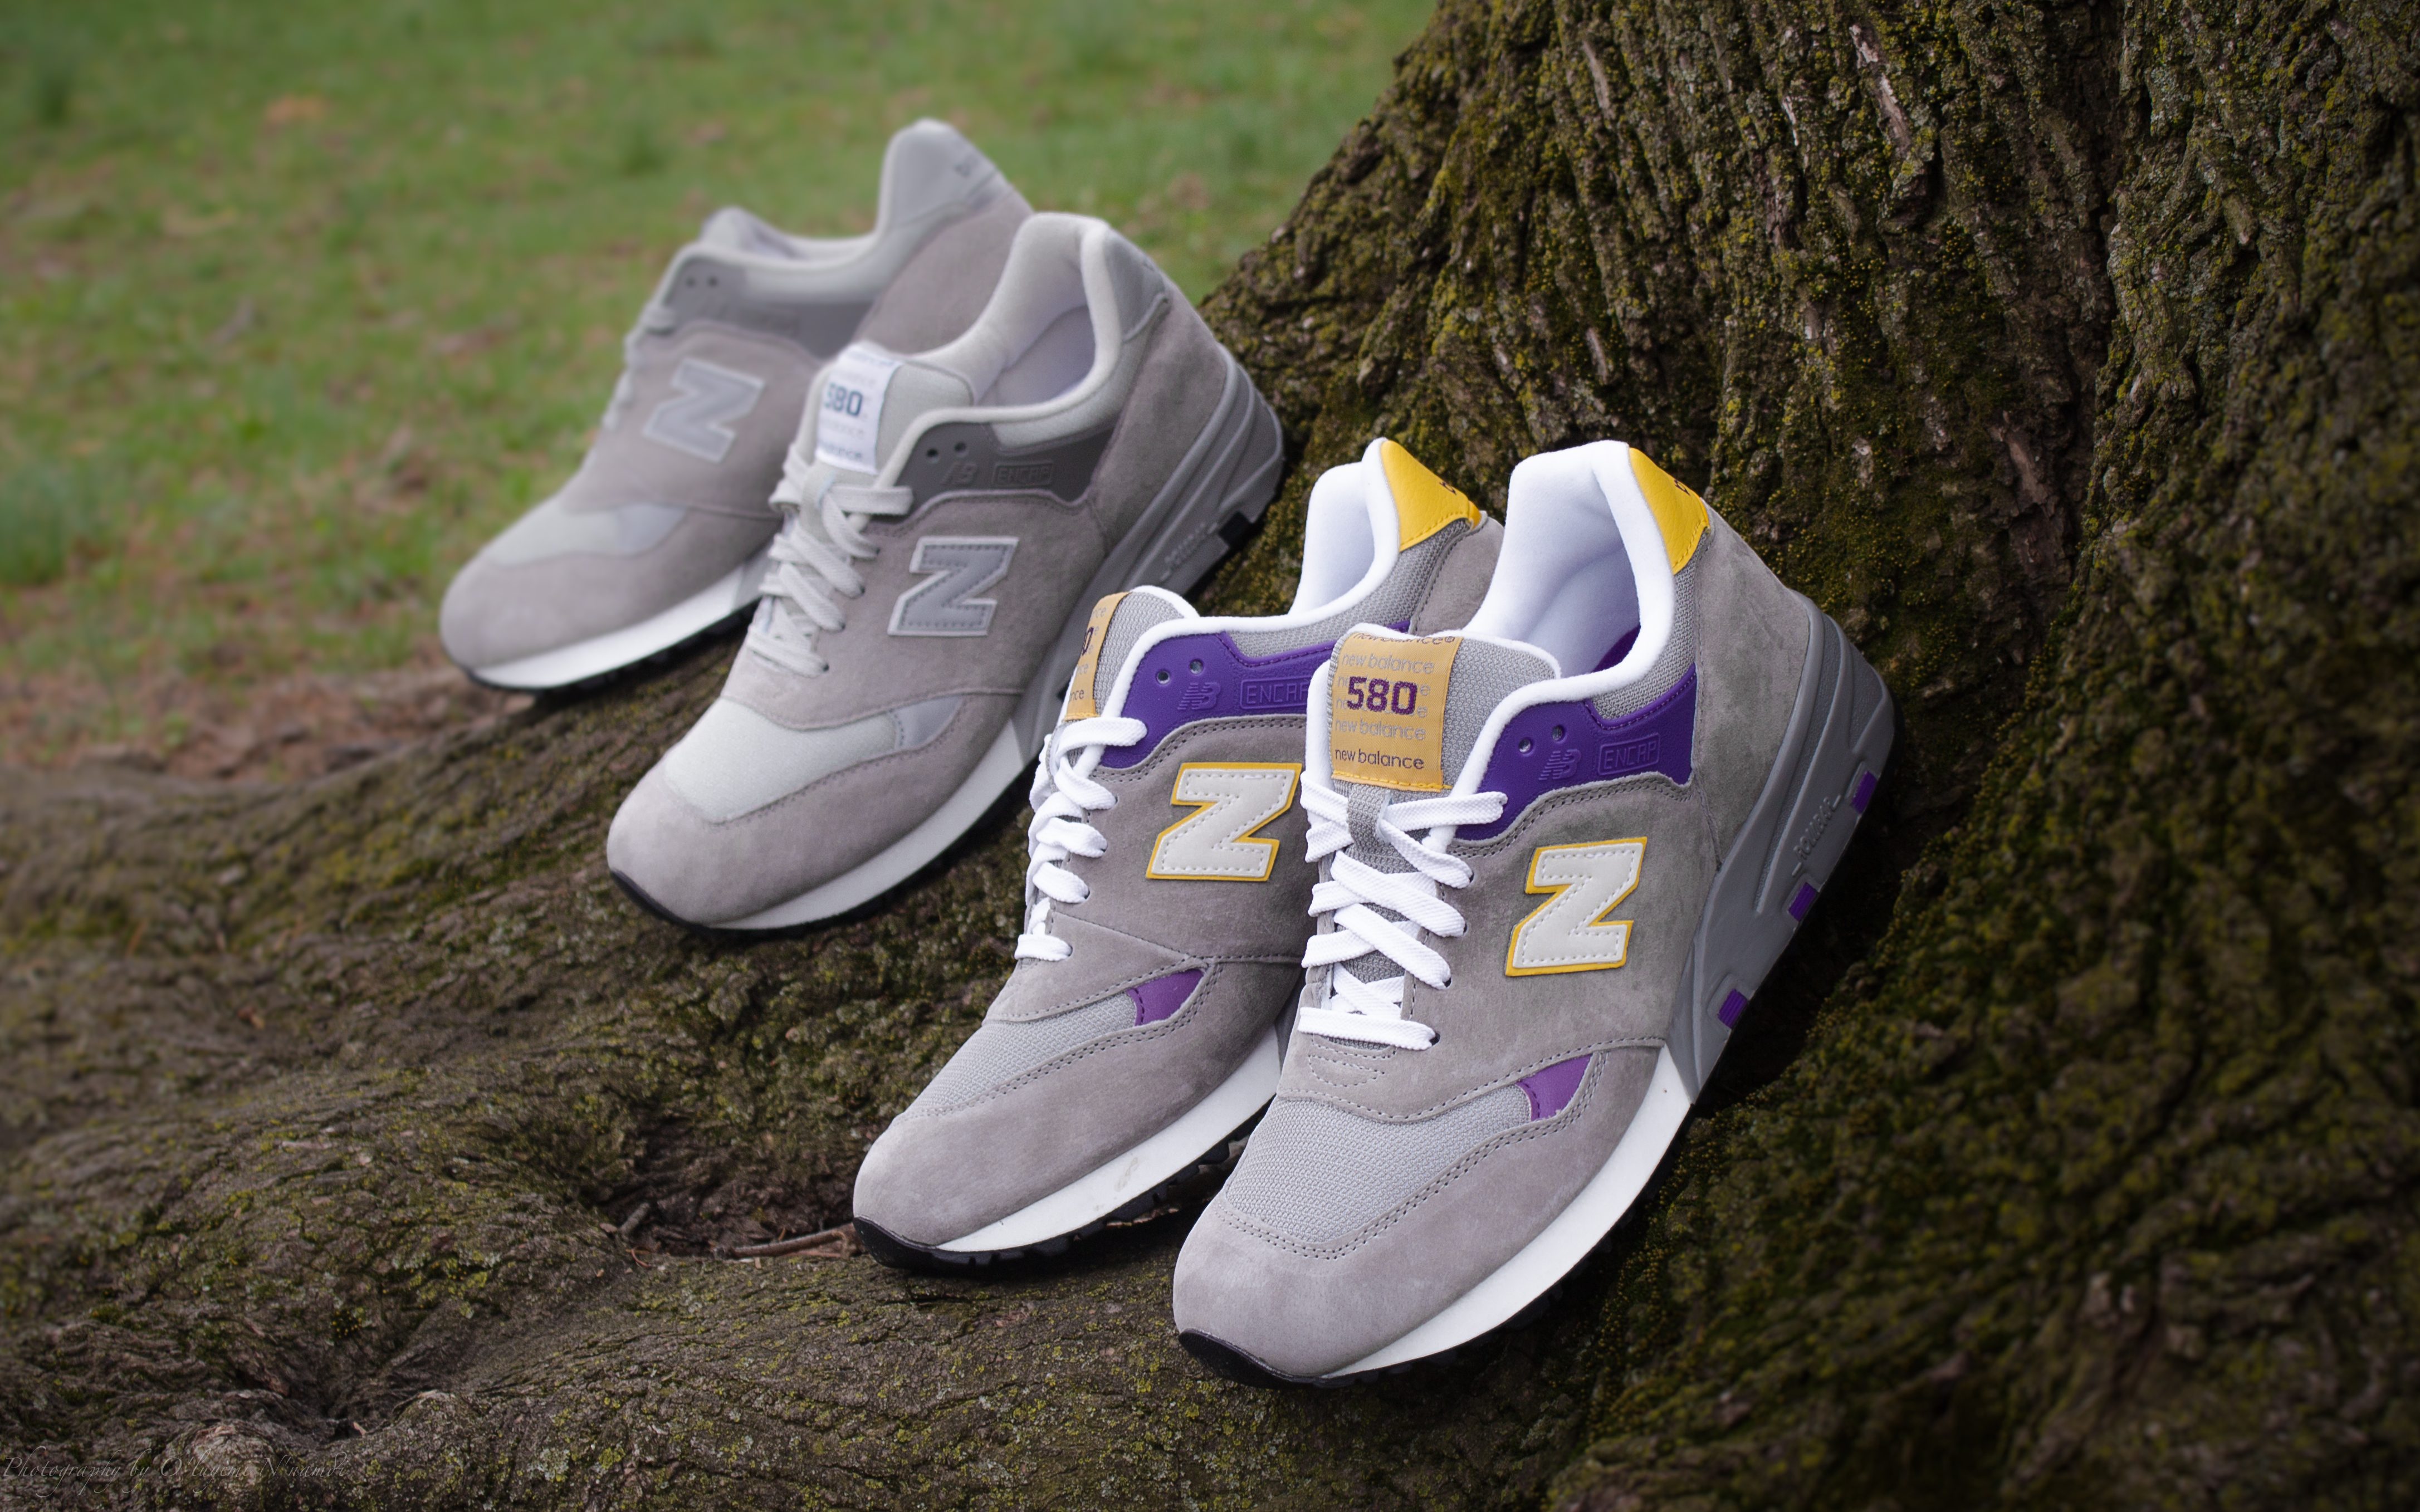 new balance 580 – PACKER SHOES